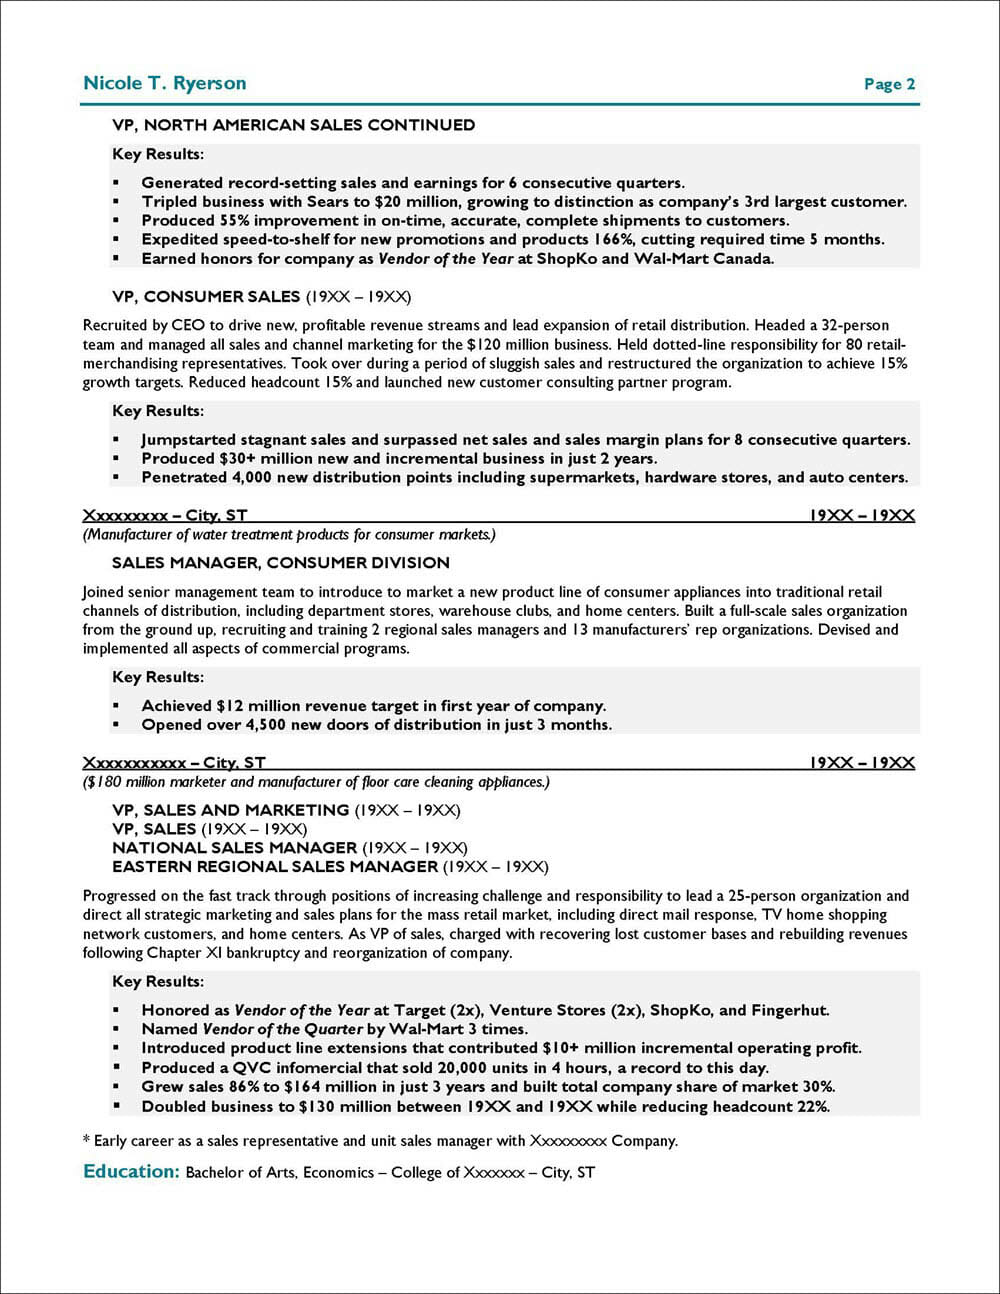 Sales and Marketing Executive Resume Page 2